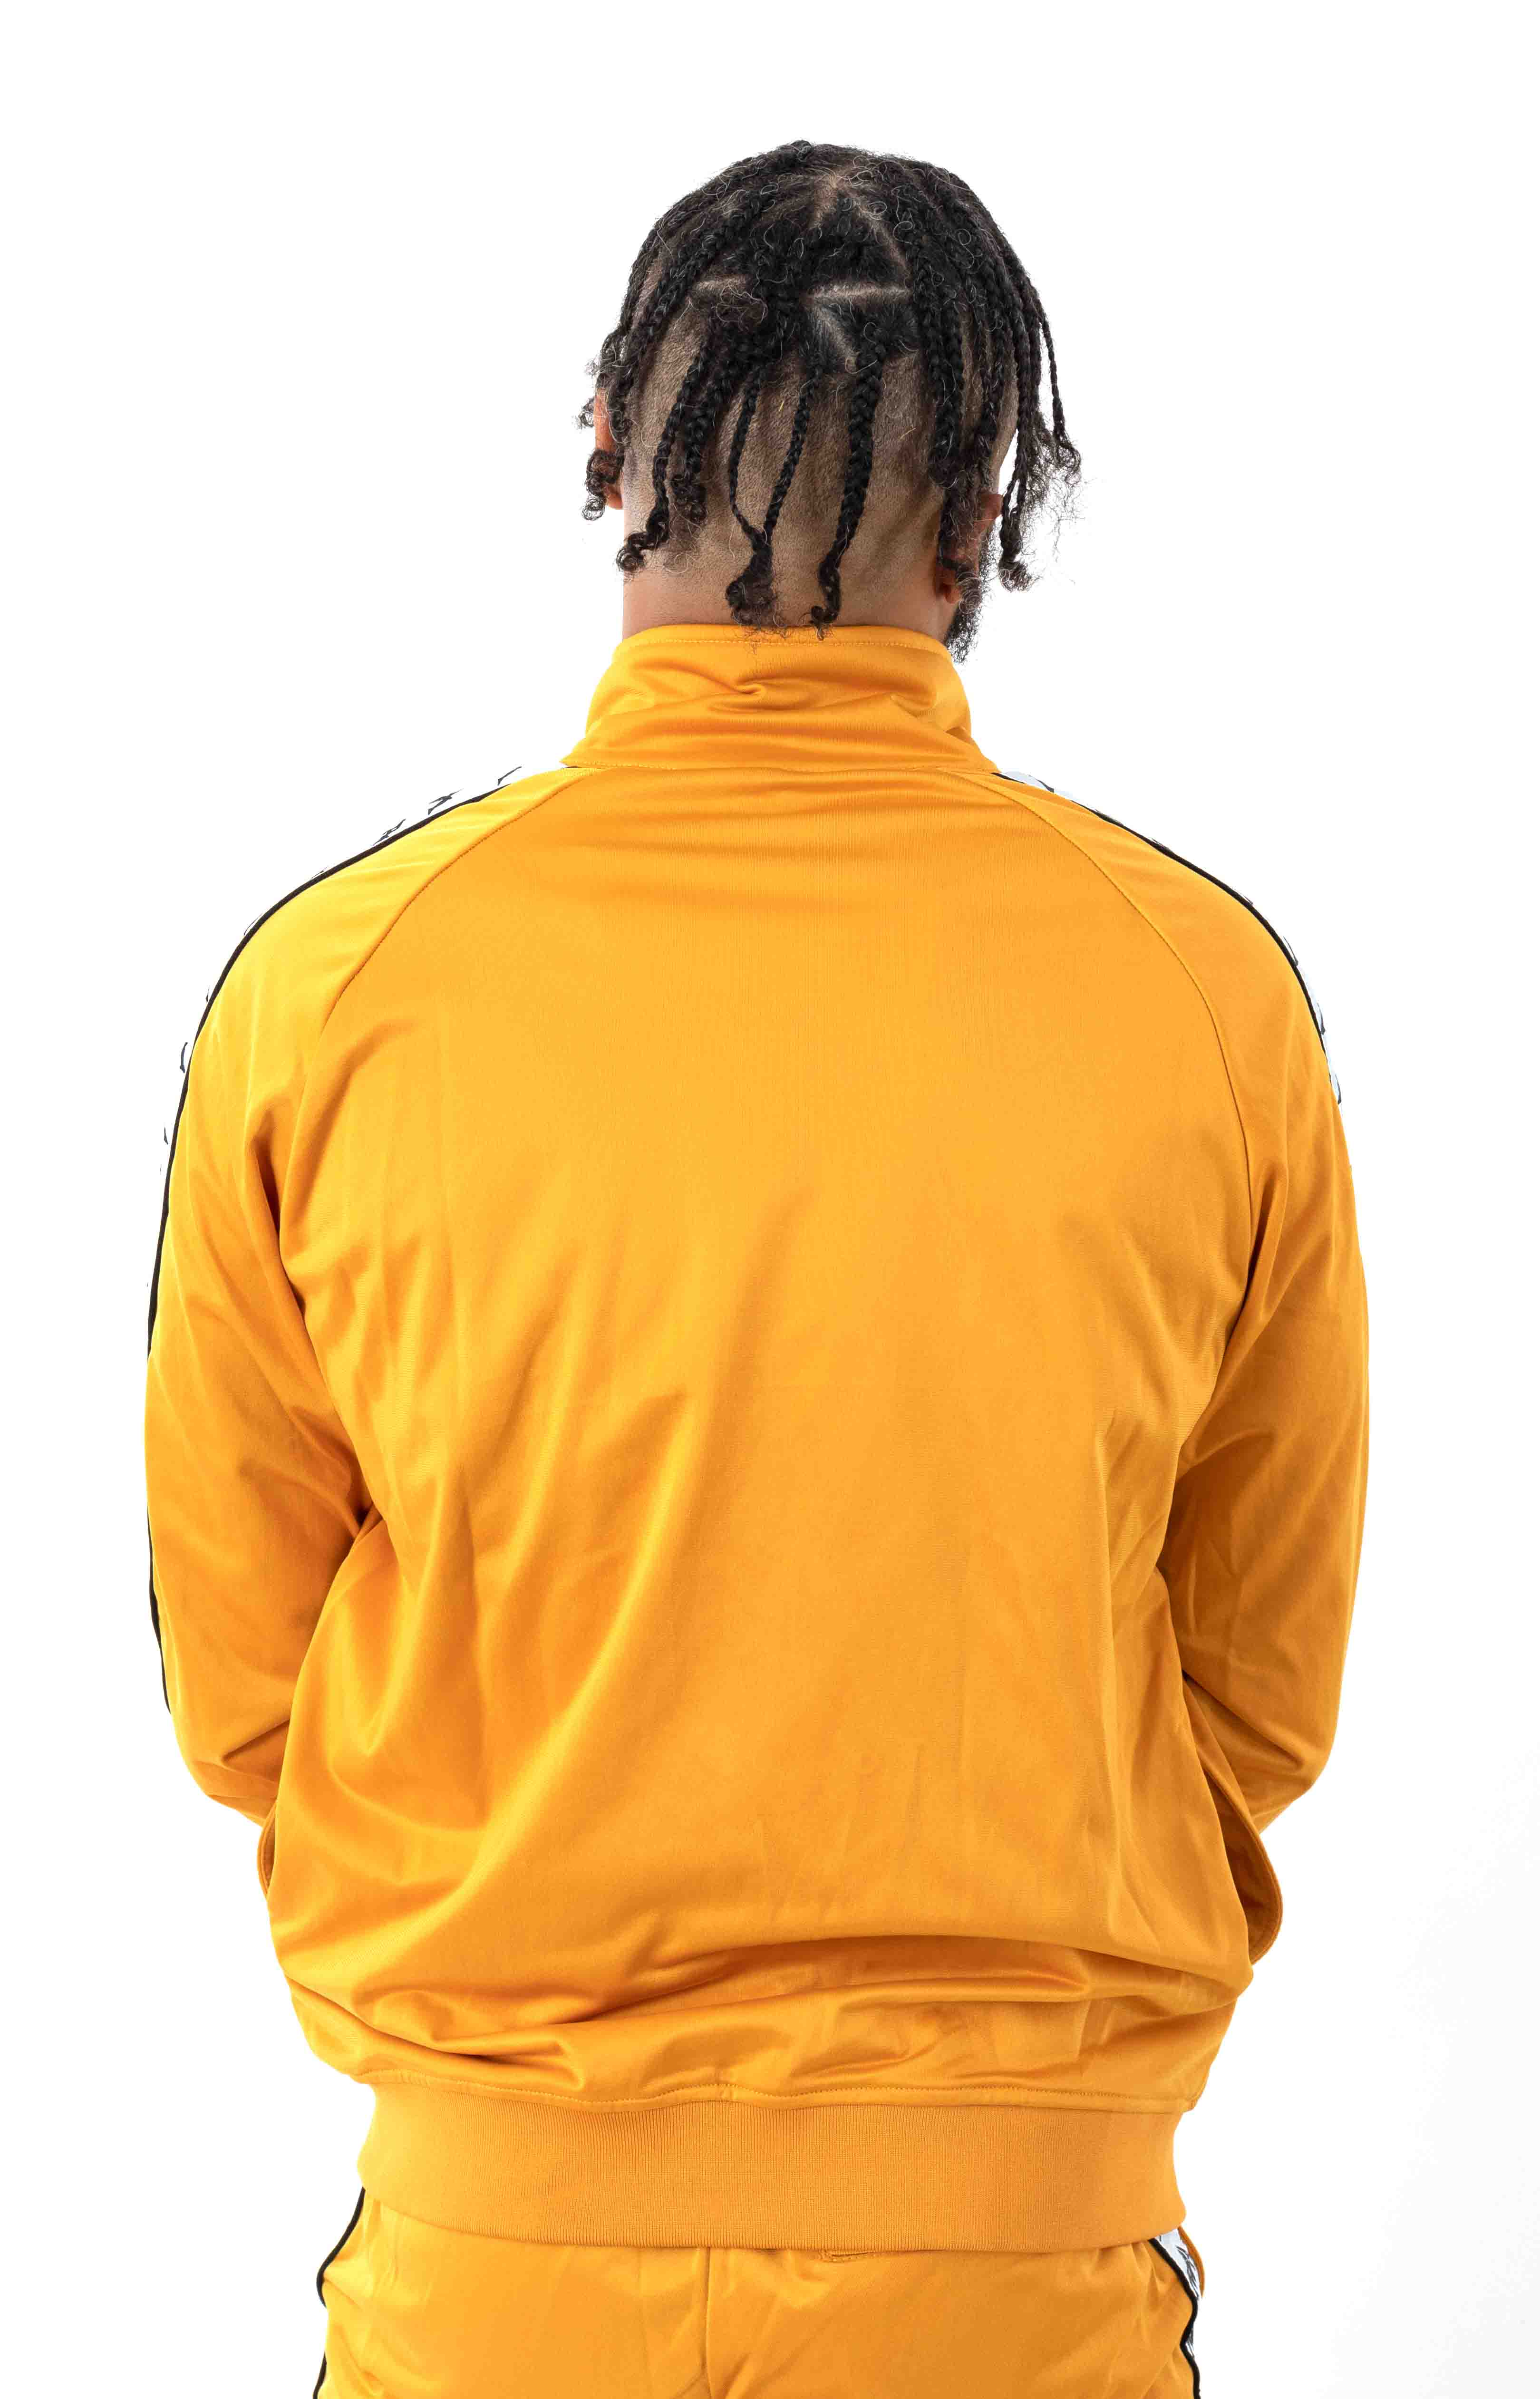 222 Banda Anniston Track Jacket - Yellow Ochre/White  3